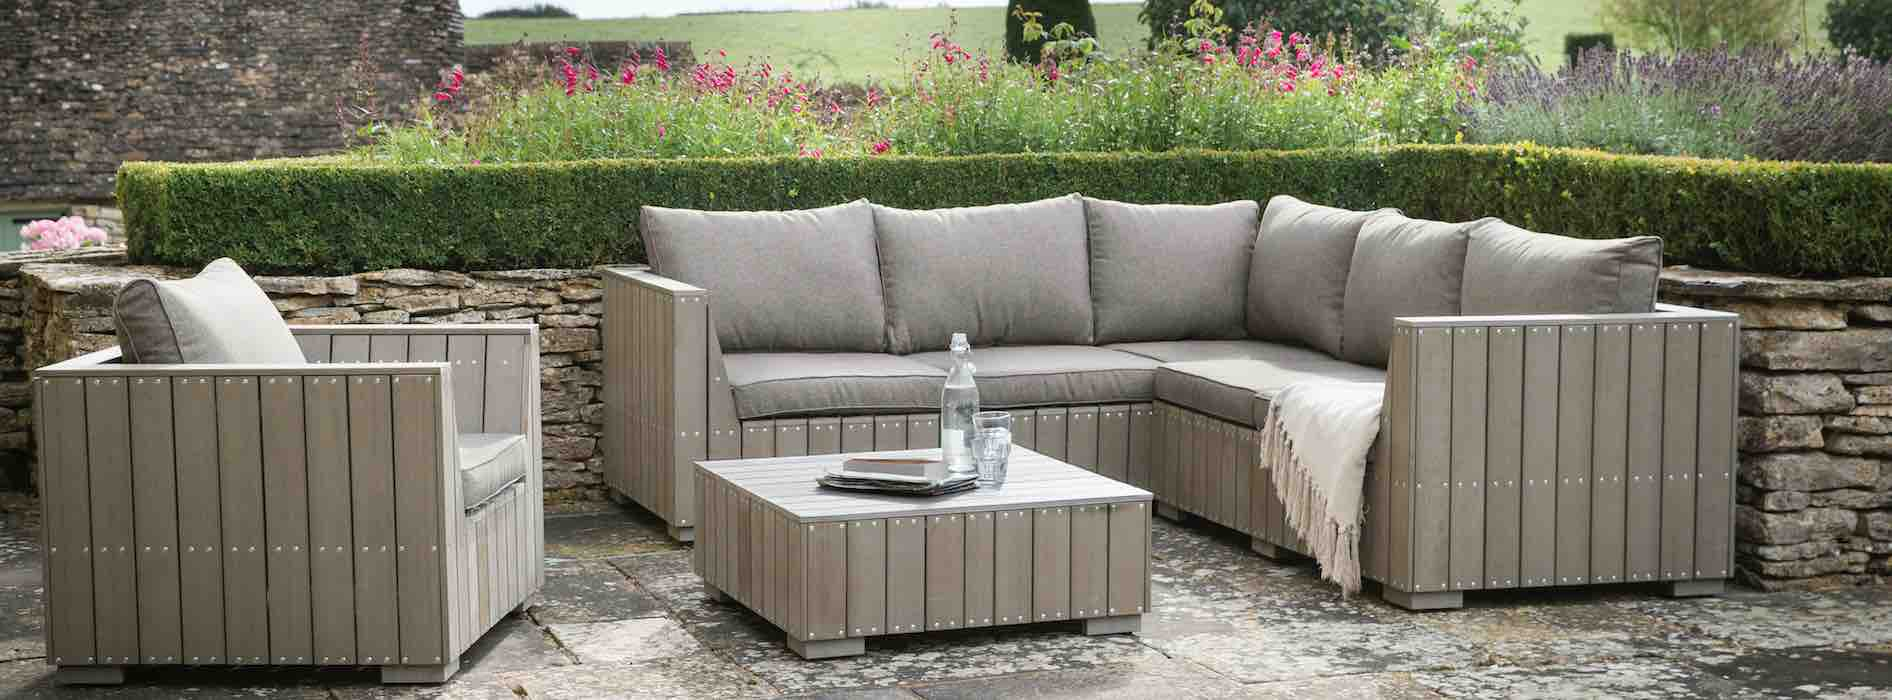 Reclaimed, Recycled, Sustainable Garden Furniture